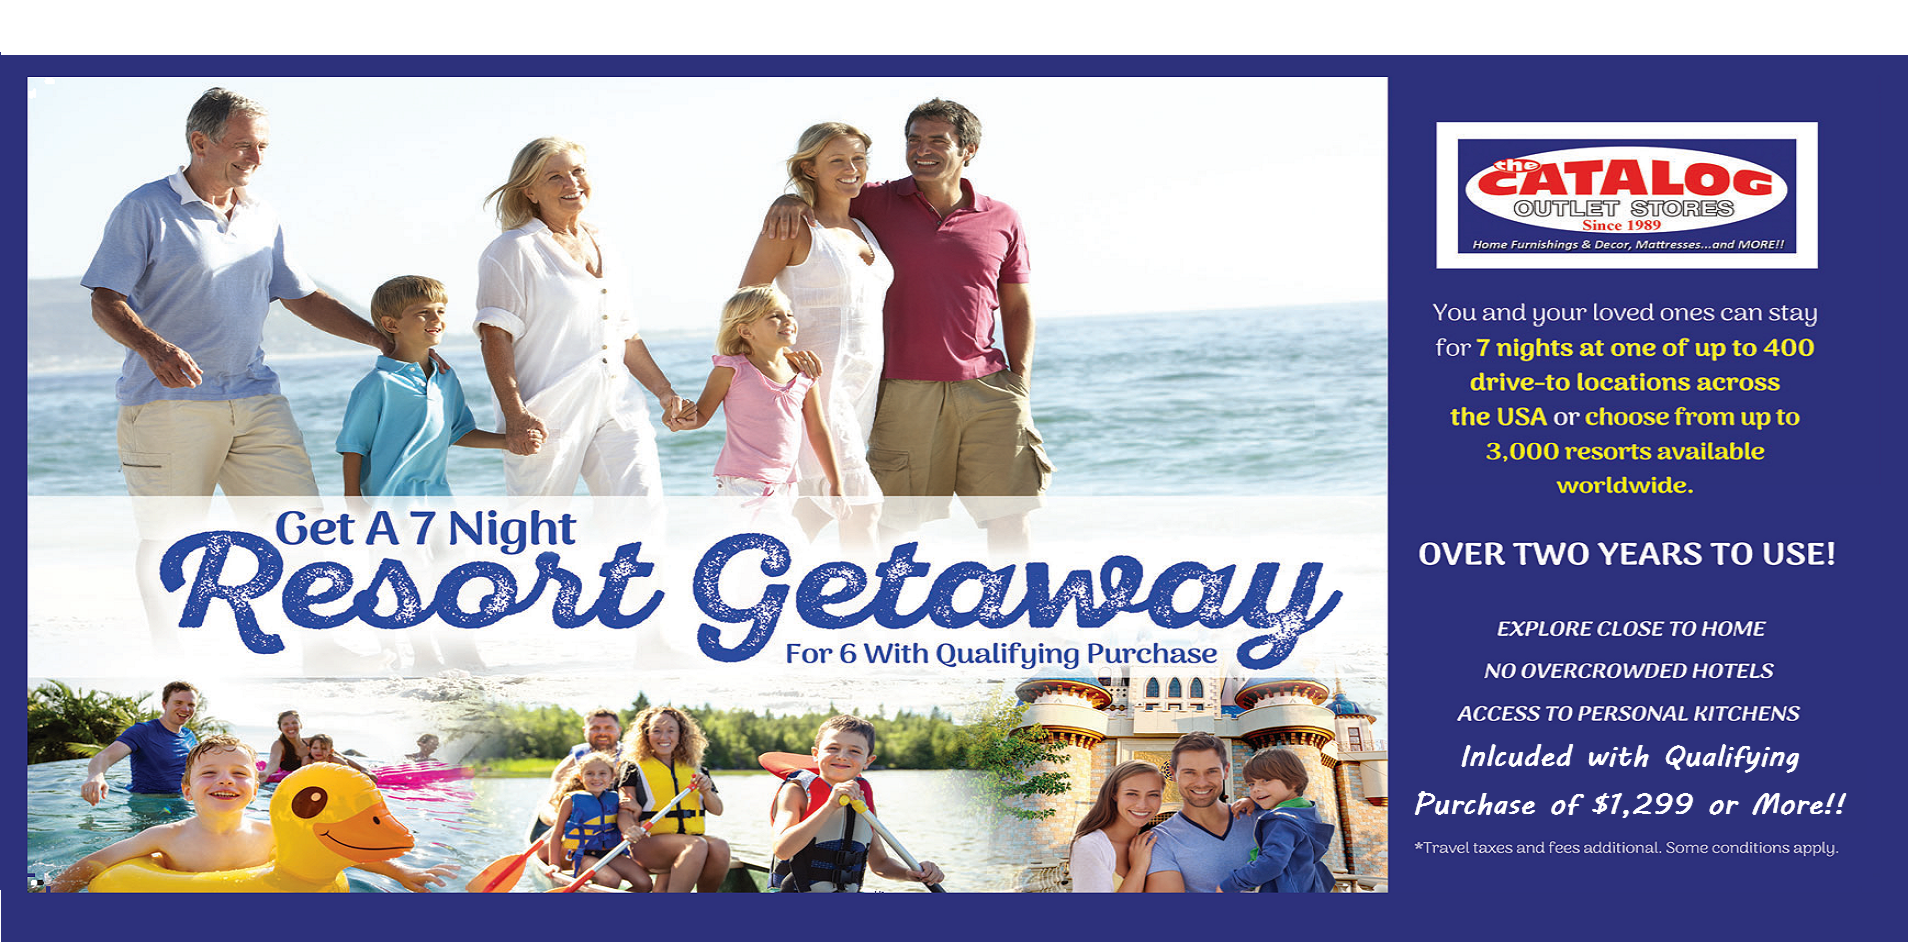 7 Night Getaway With Purchase